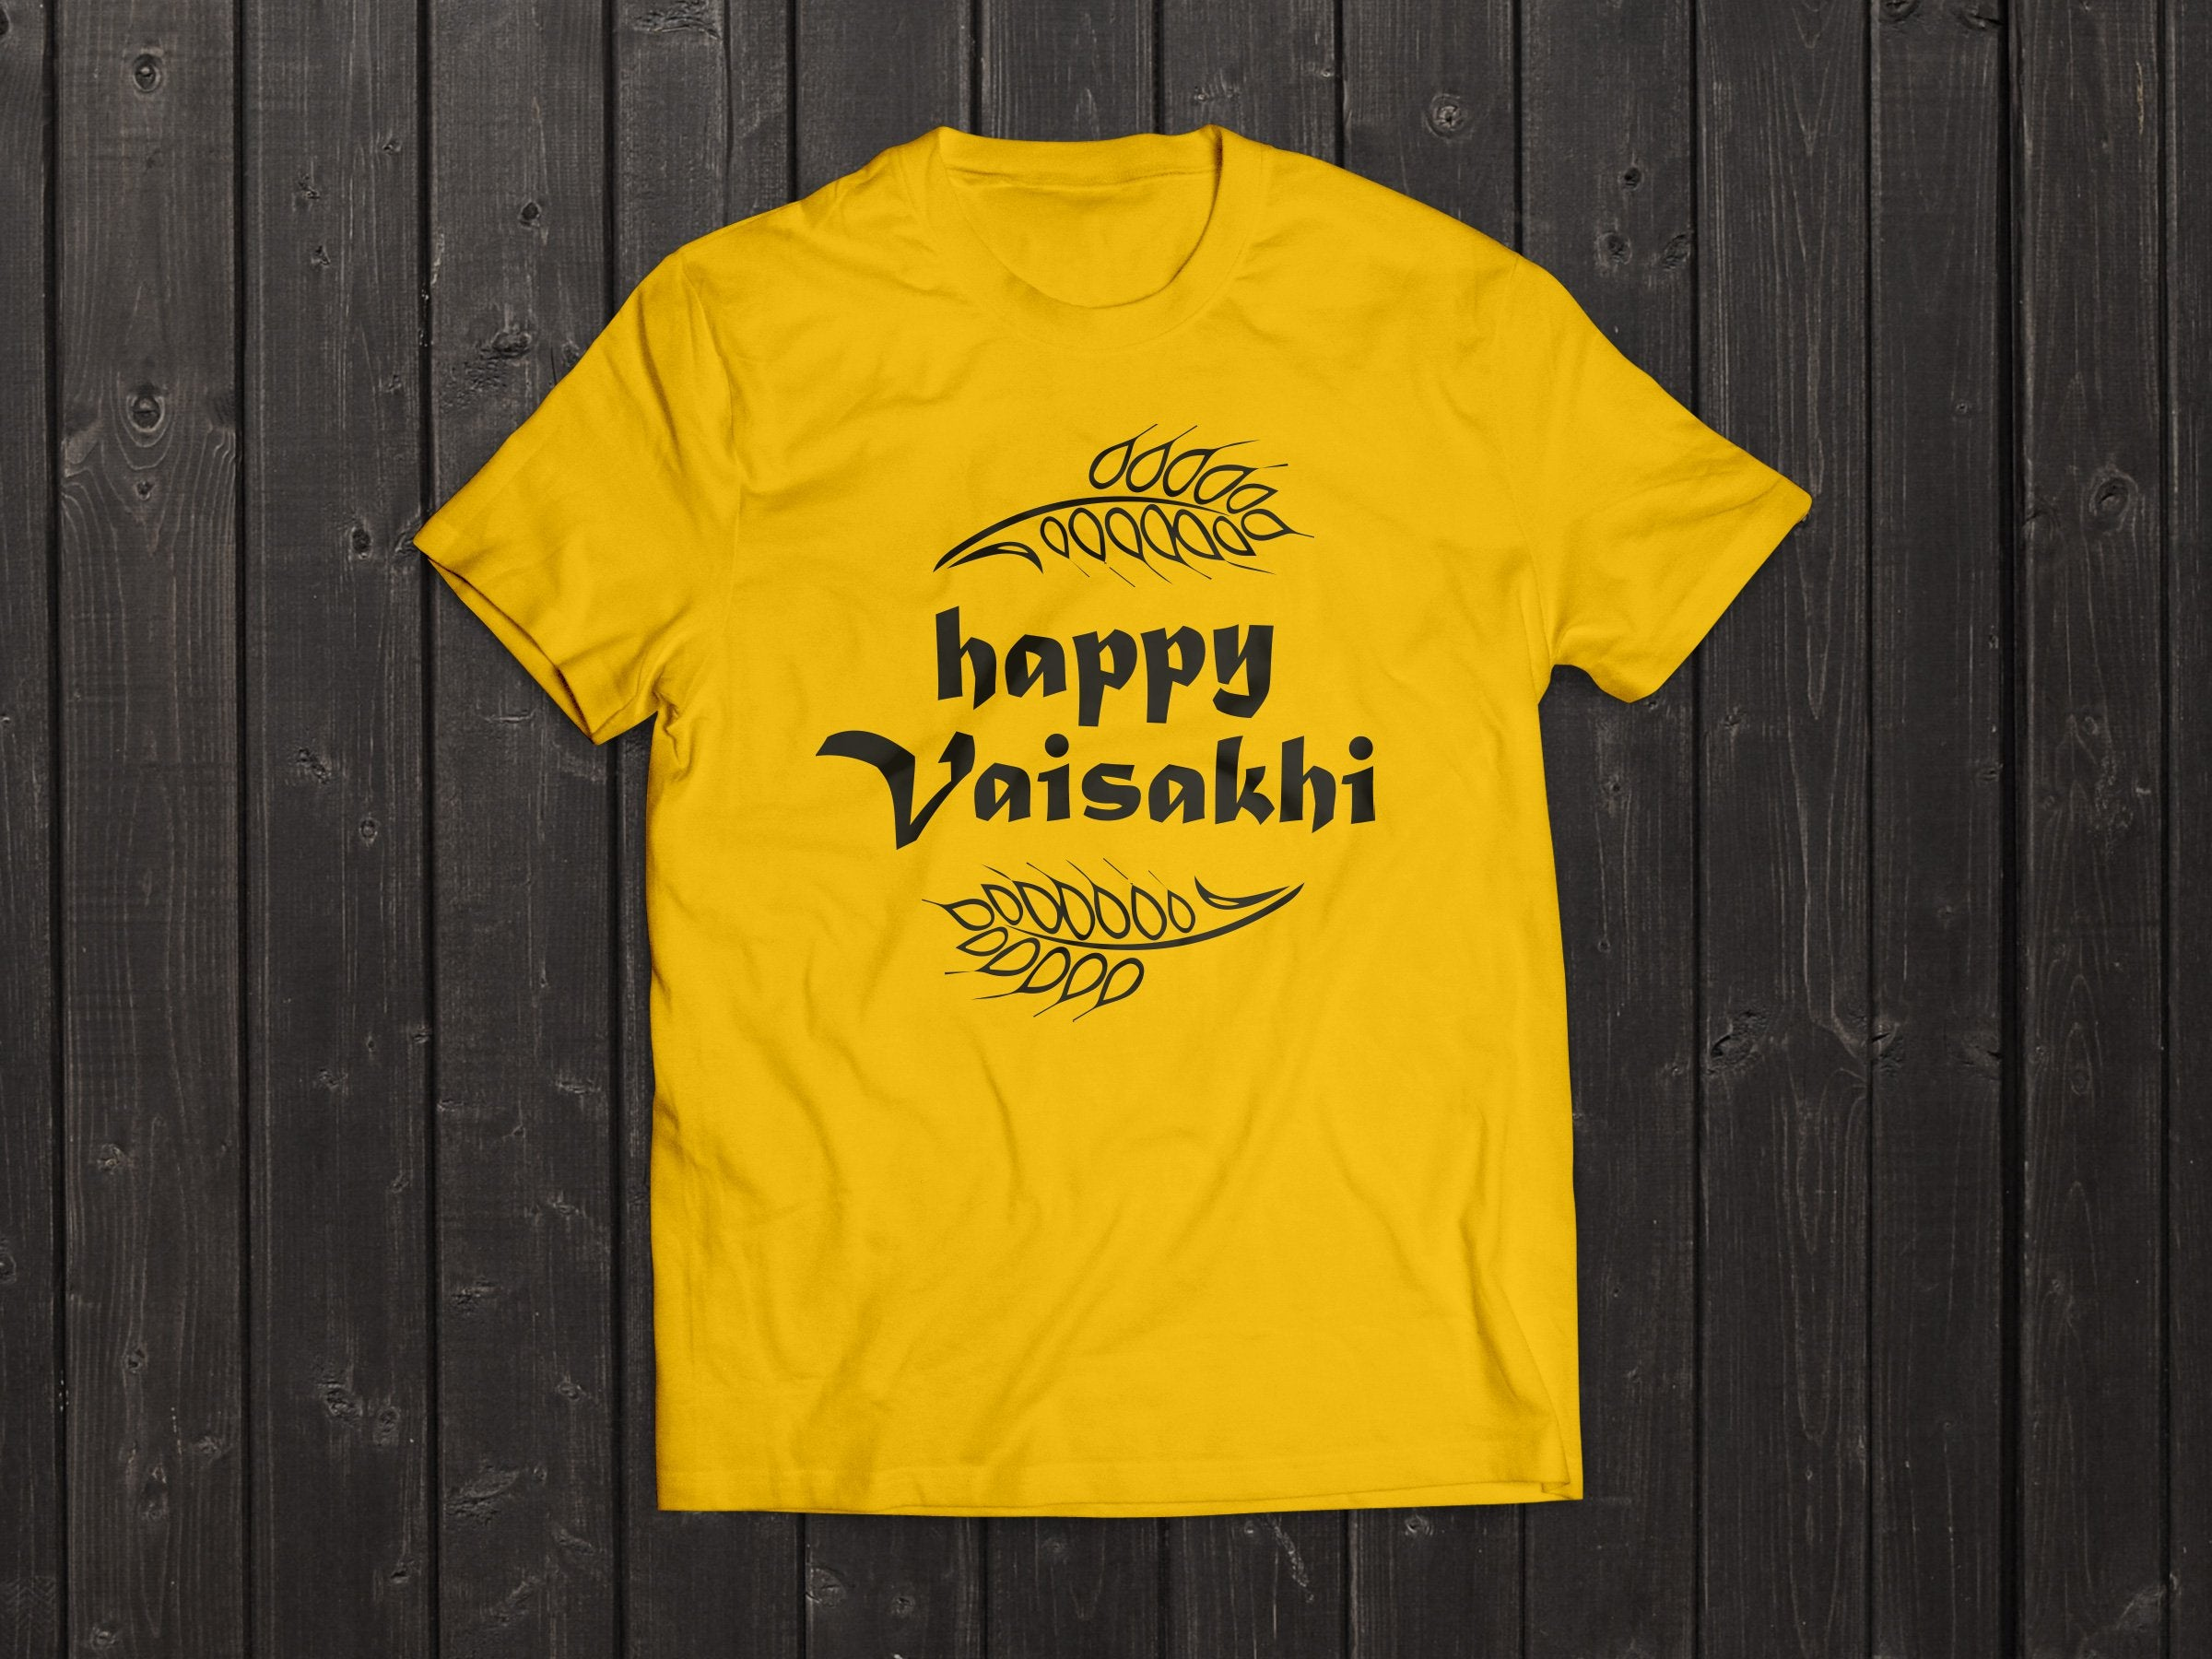 The  Tony Singh Happy Vaisakhi T Shirt in Yellow